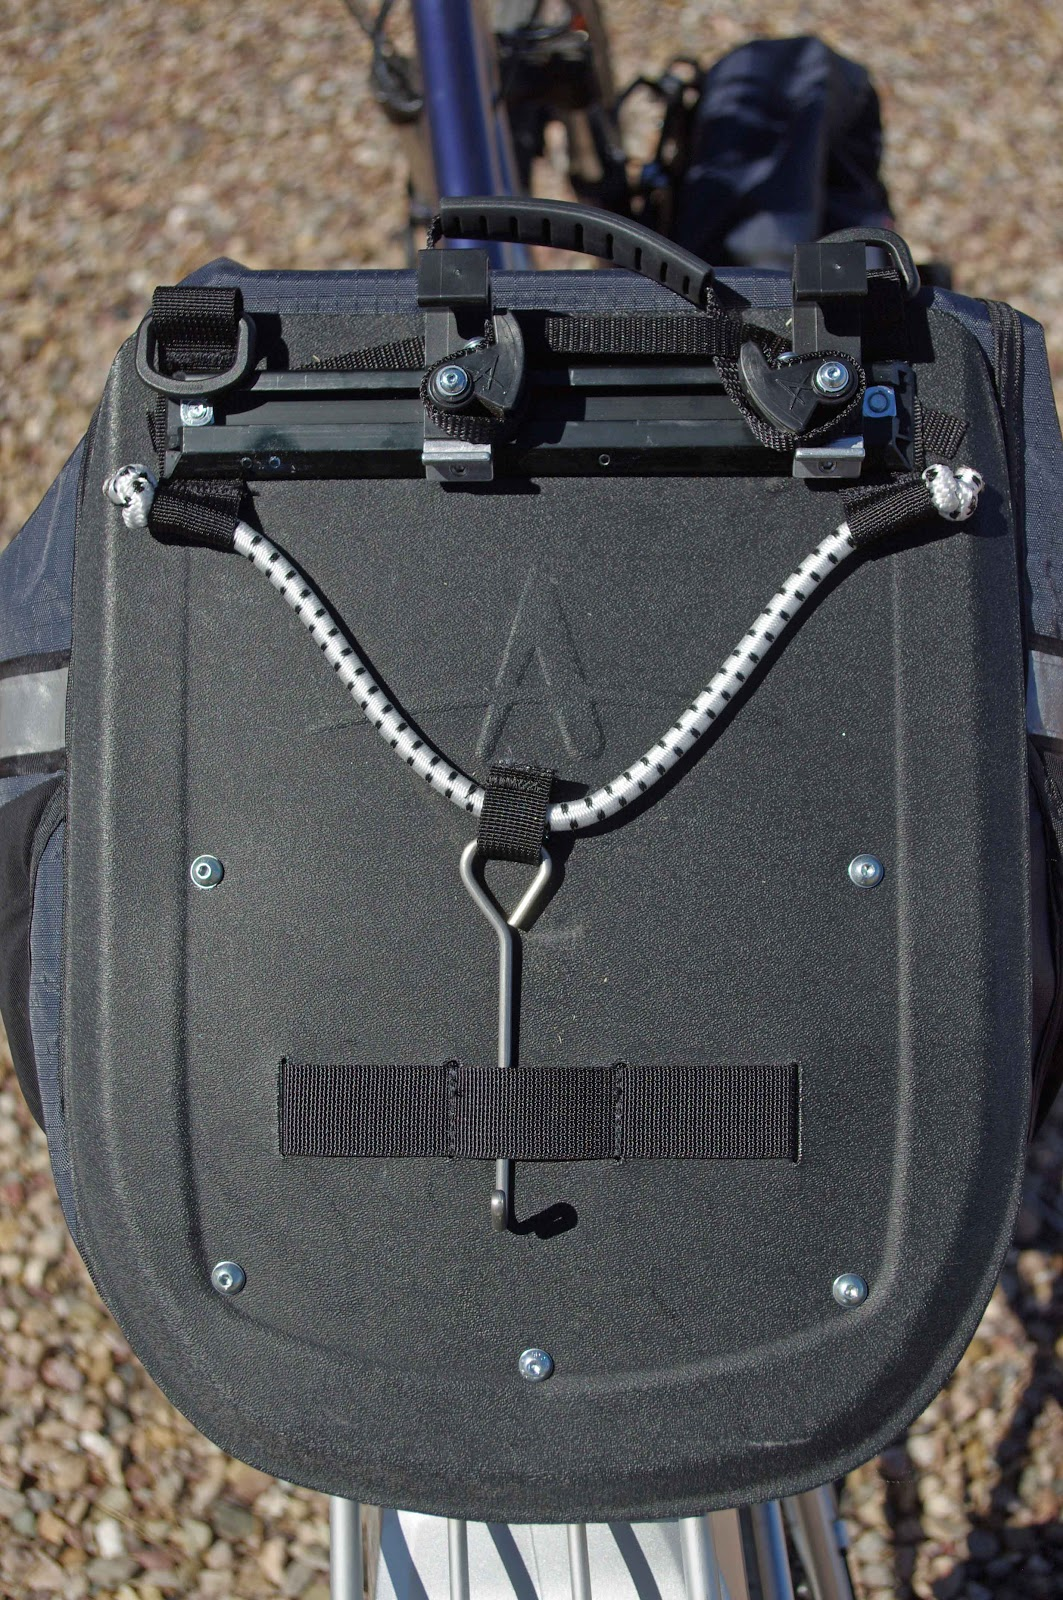 usbackroads: Review of Arkel Bicycle Panniers